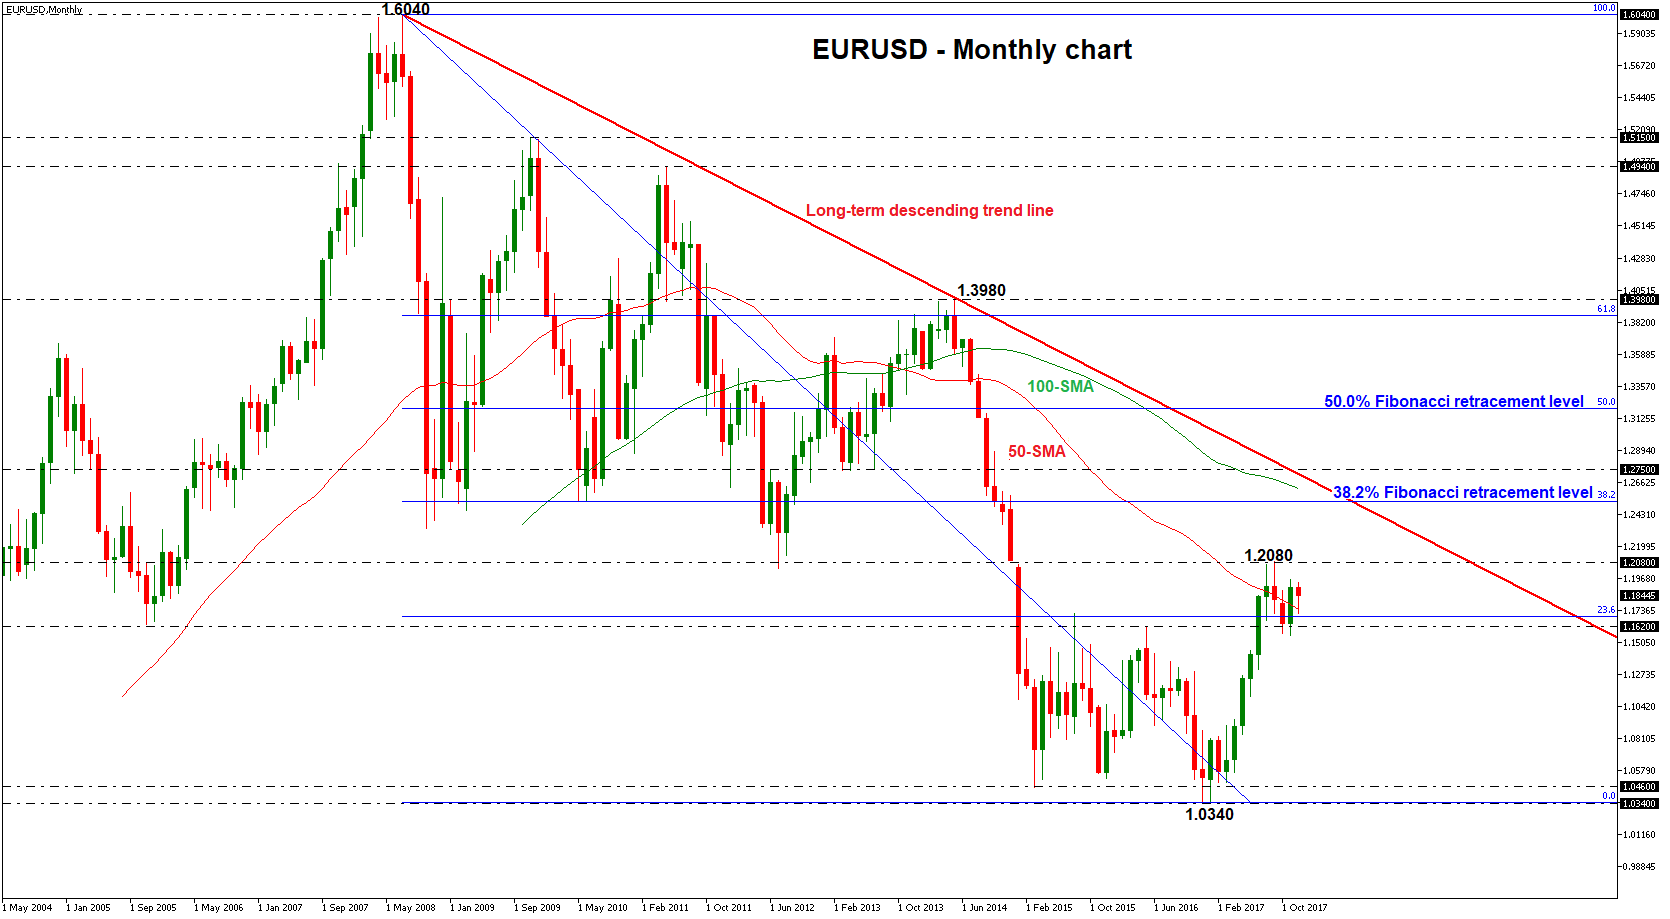 Eurusd technical analysis 2018 outlook forex eu eurusd monthly chart 2017 nvjuhfo Images